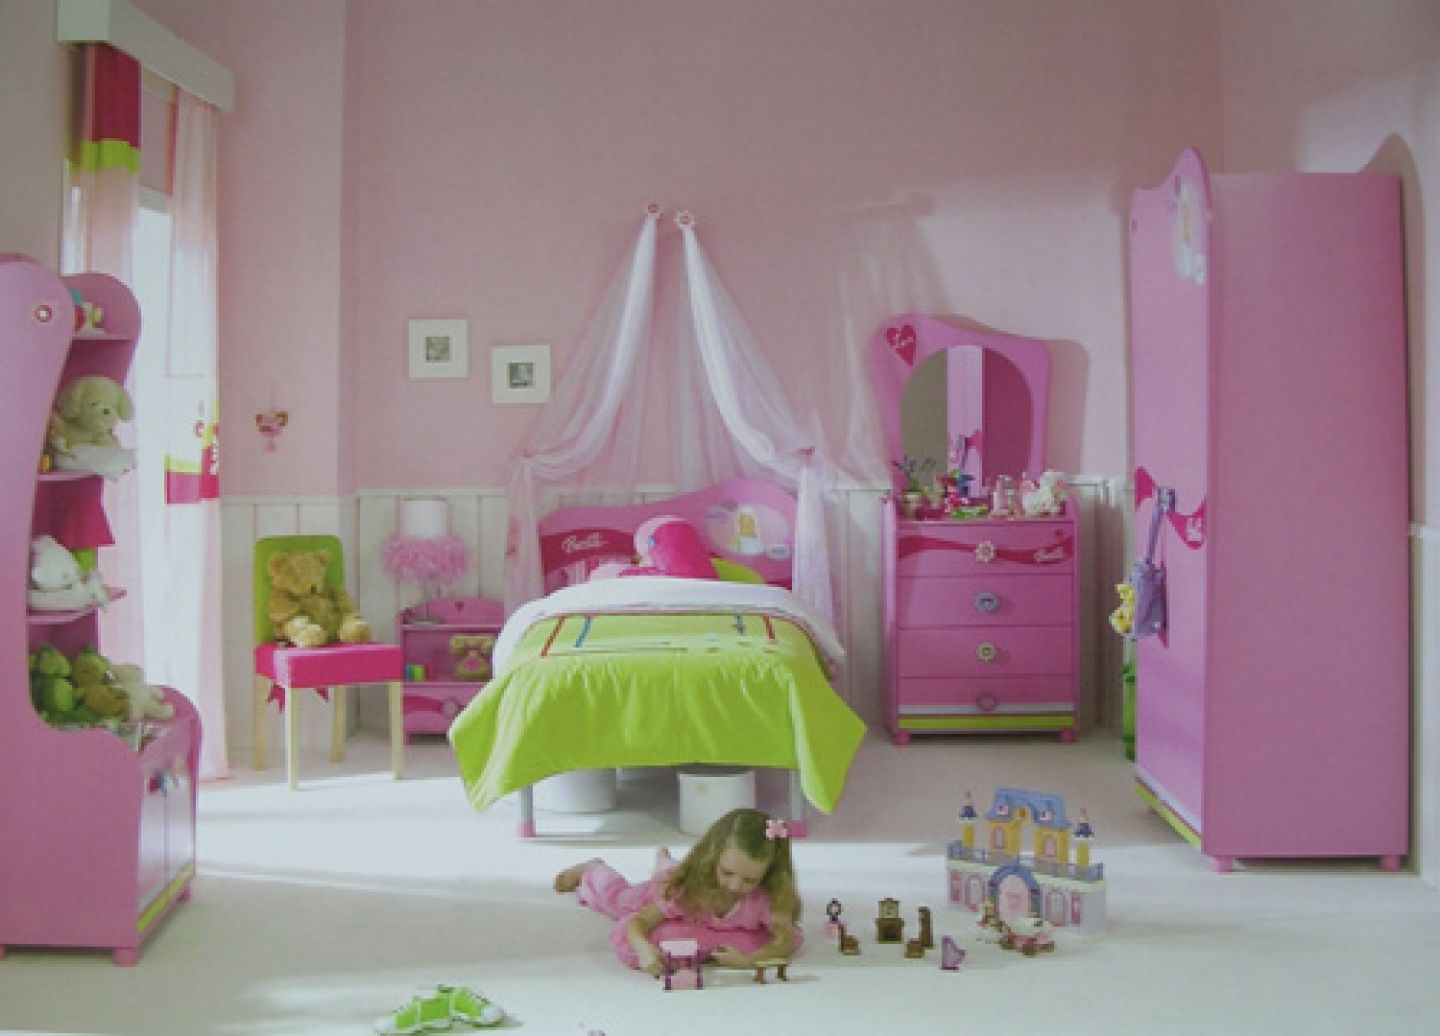 kids bedroom ideas kids bedroom pinky decoration inspiration girls bedroom sets decorating ideas for little - How To Decorate Kids Bedroom